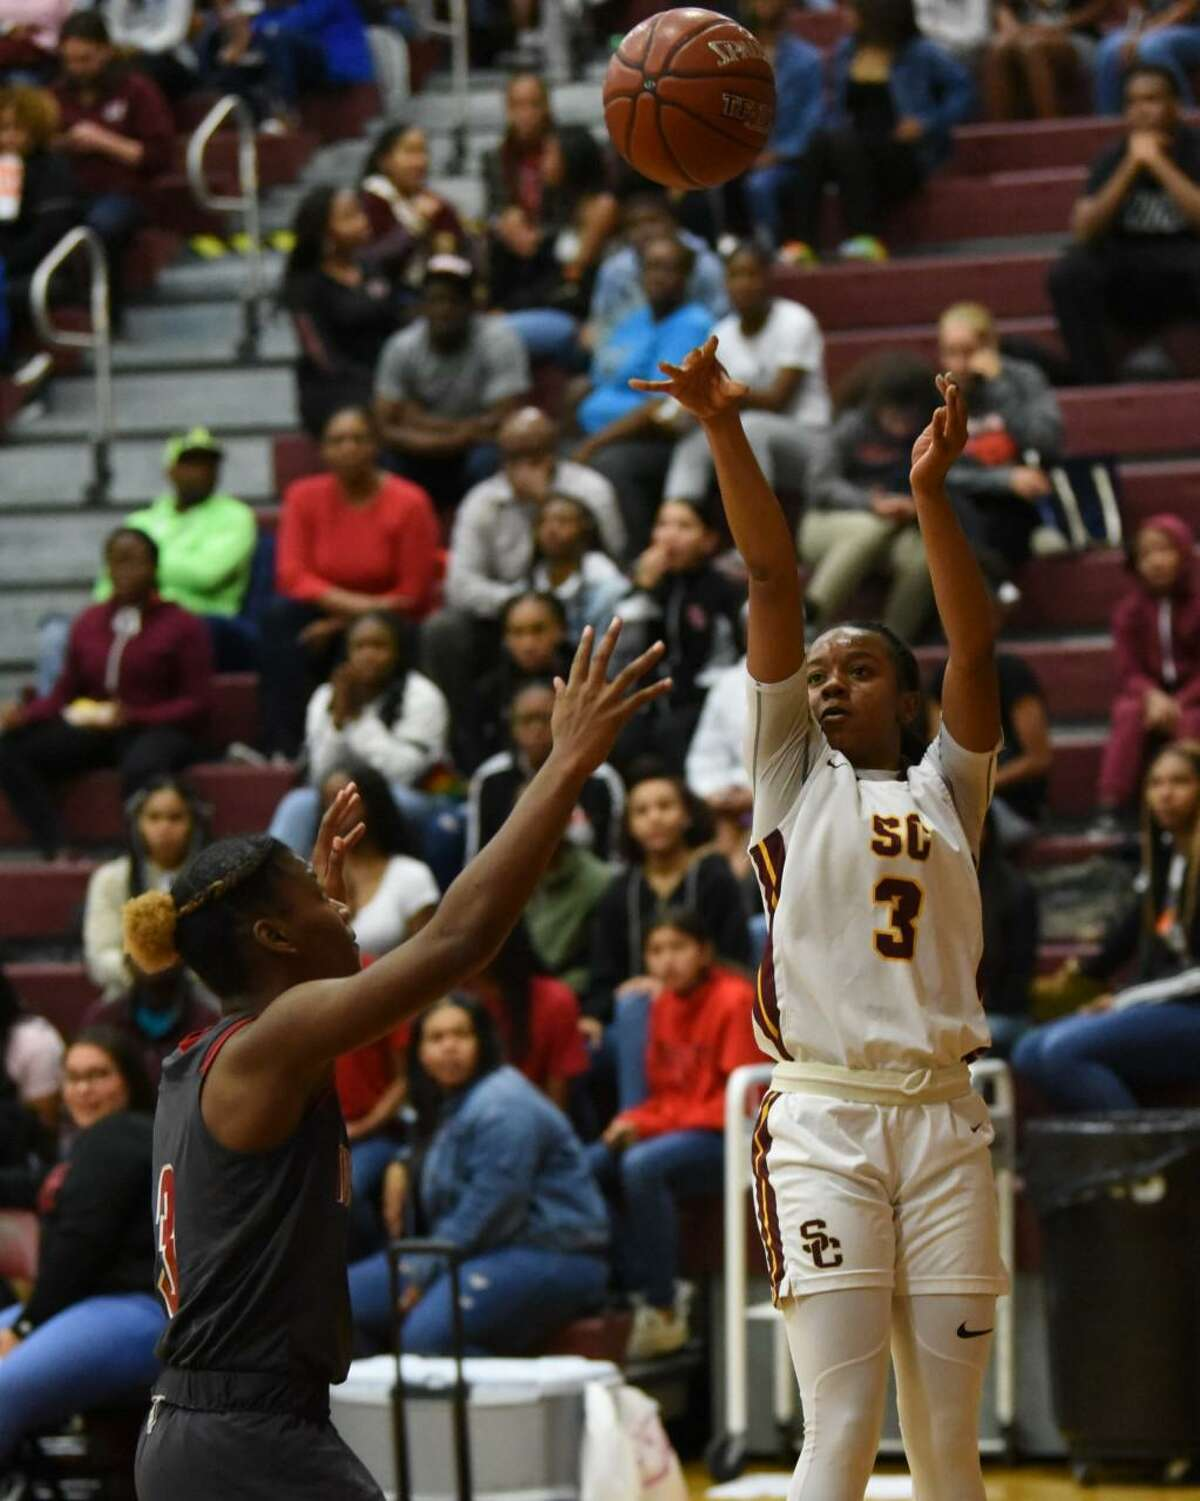 Summer Creek guard Mailyn Wilkerson shoots a 3-pointer from the corner in a non-district game Tuesday night at the Bulldog gym.